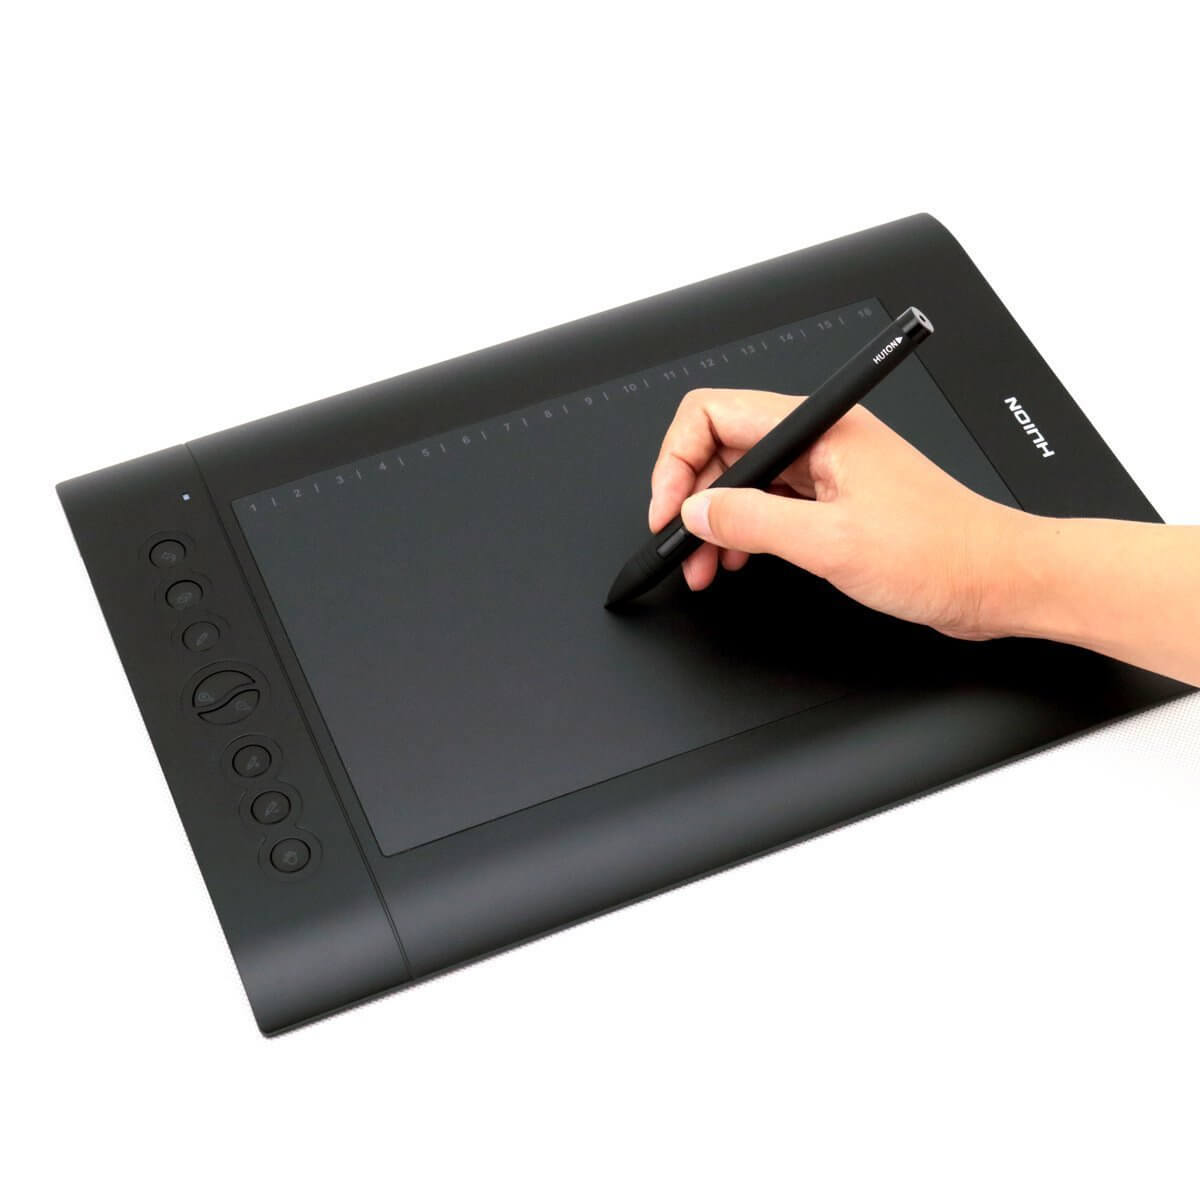 Design Tablett Tablet